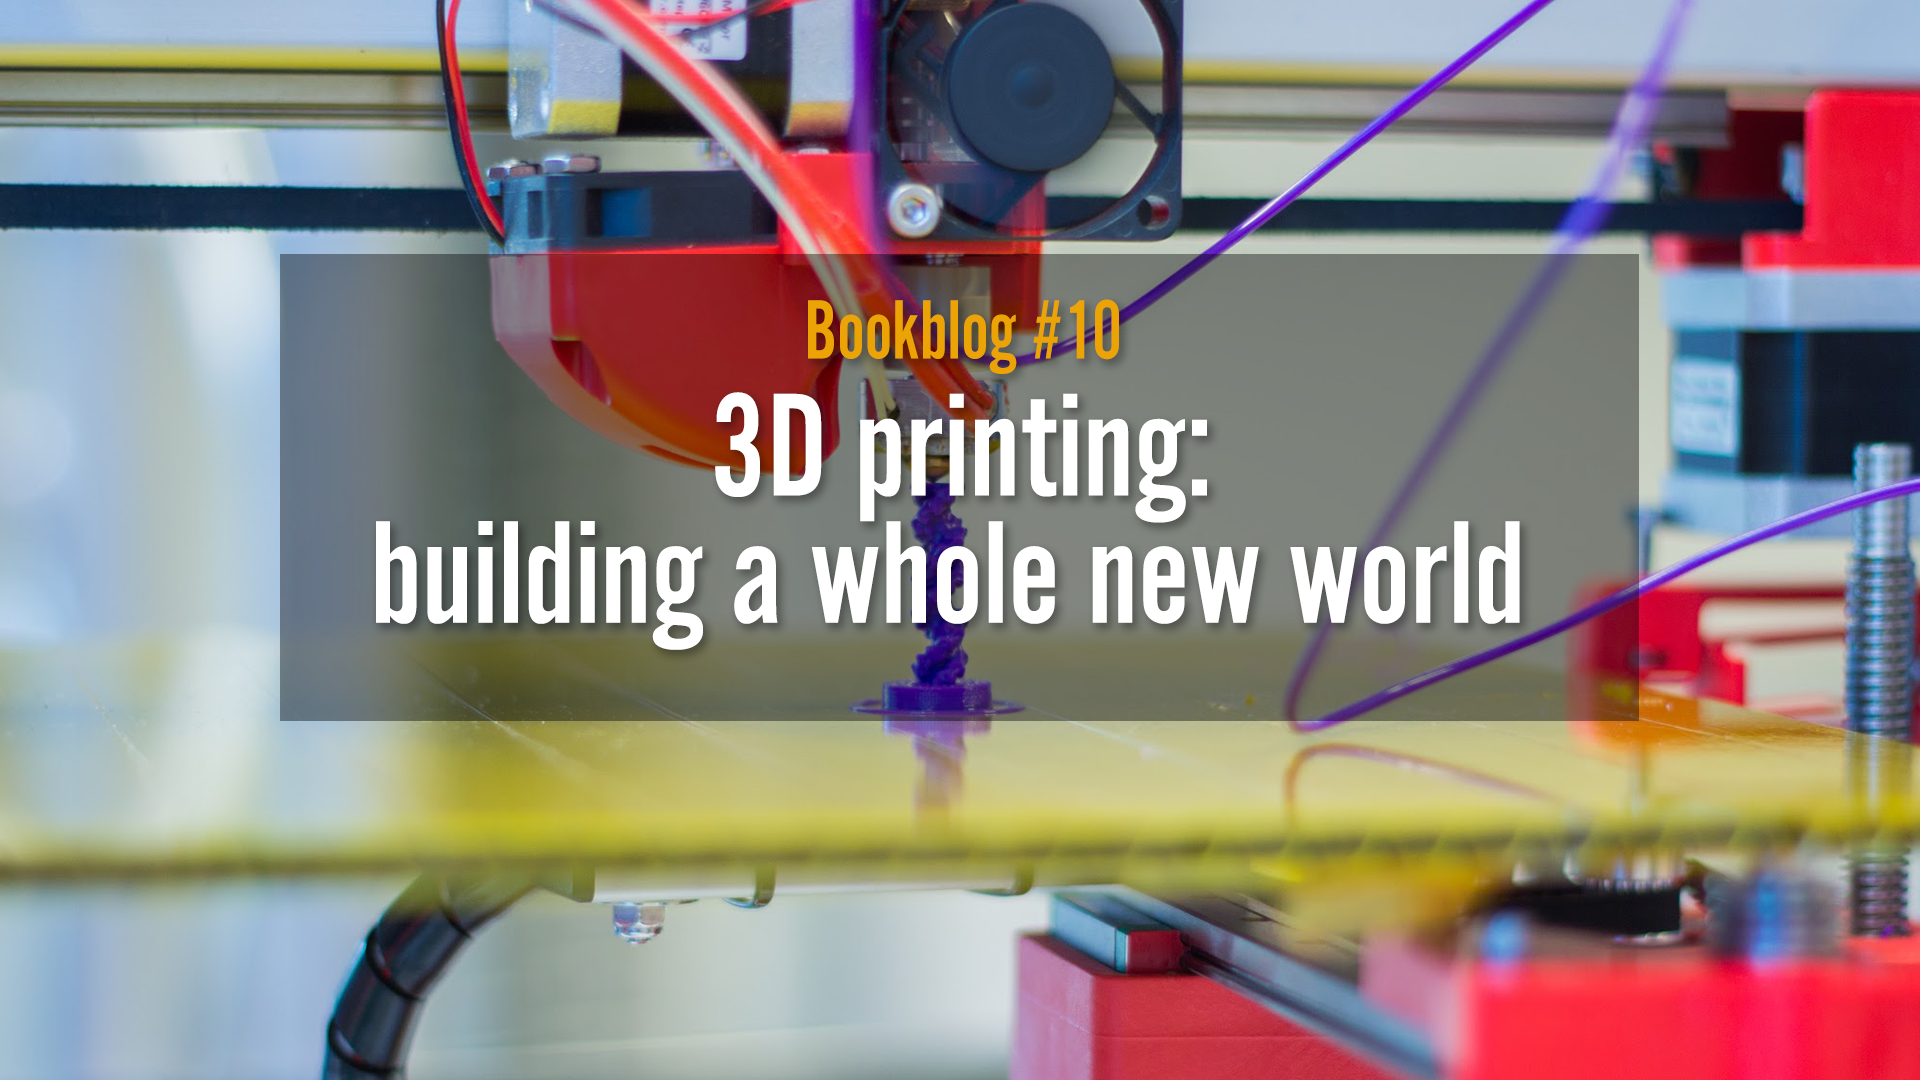 3D printing: building a whole new world